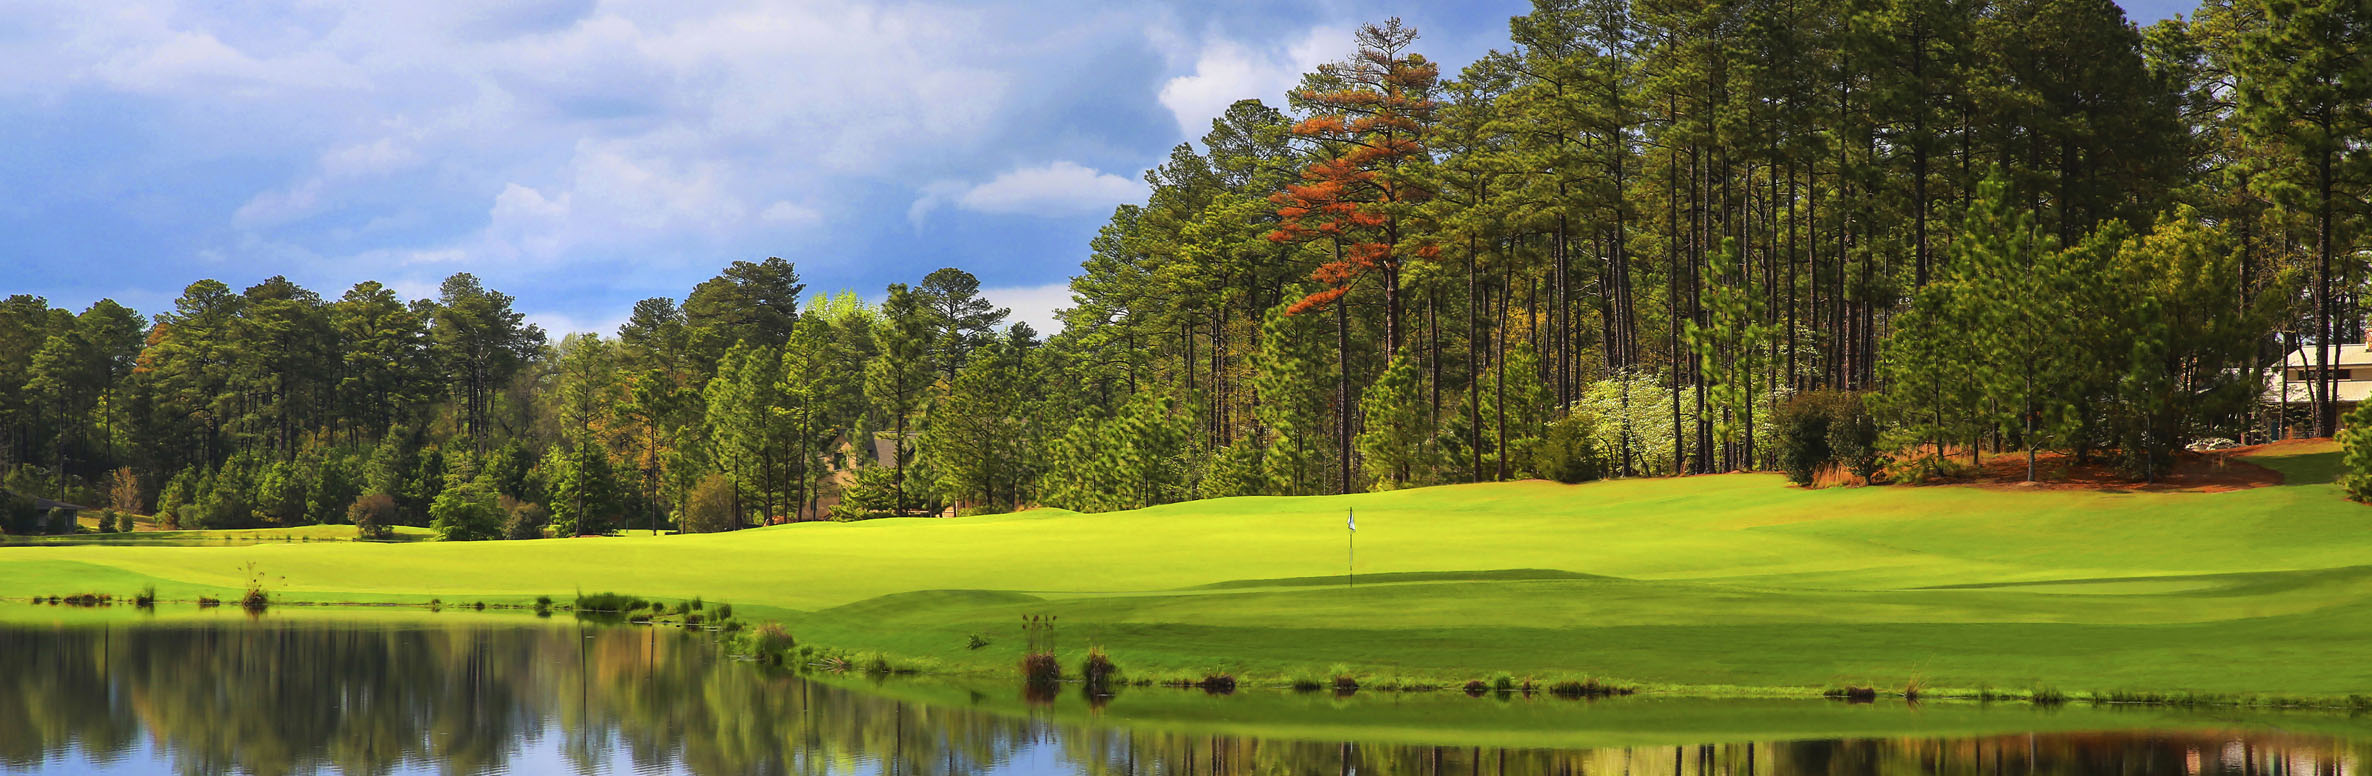 Golf Course Image - Forest Creek Golf Club North No. 15